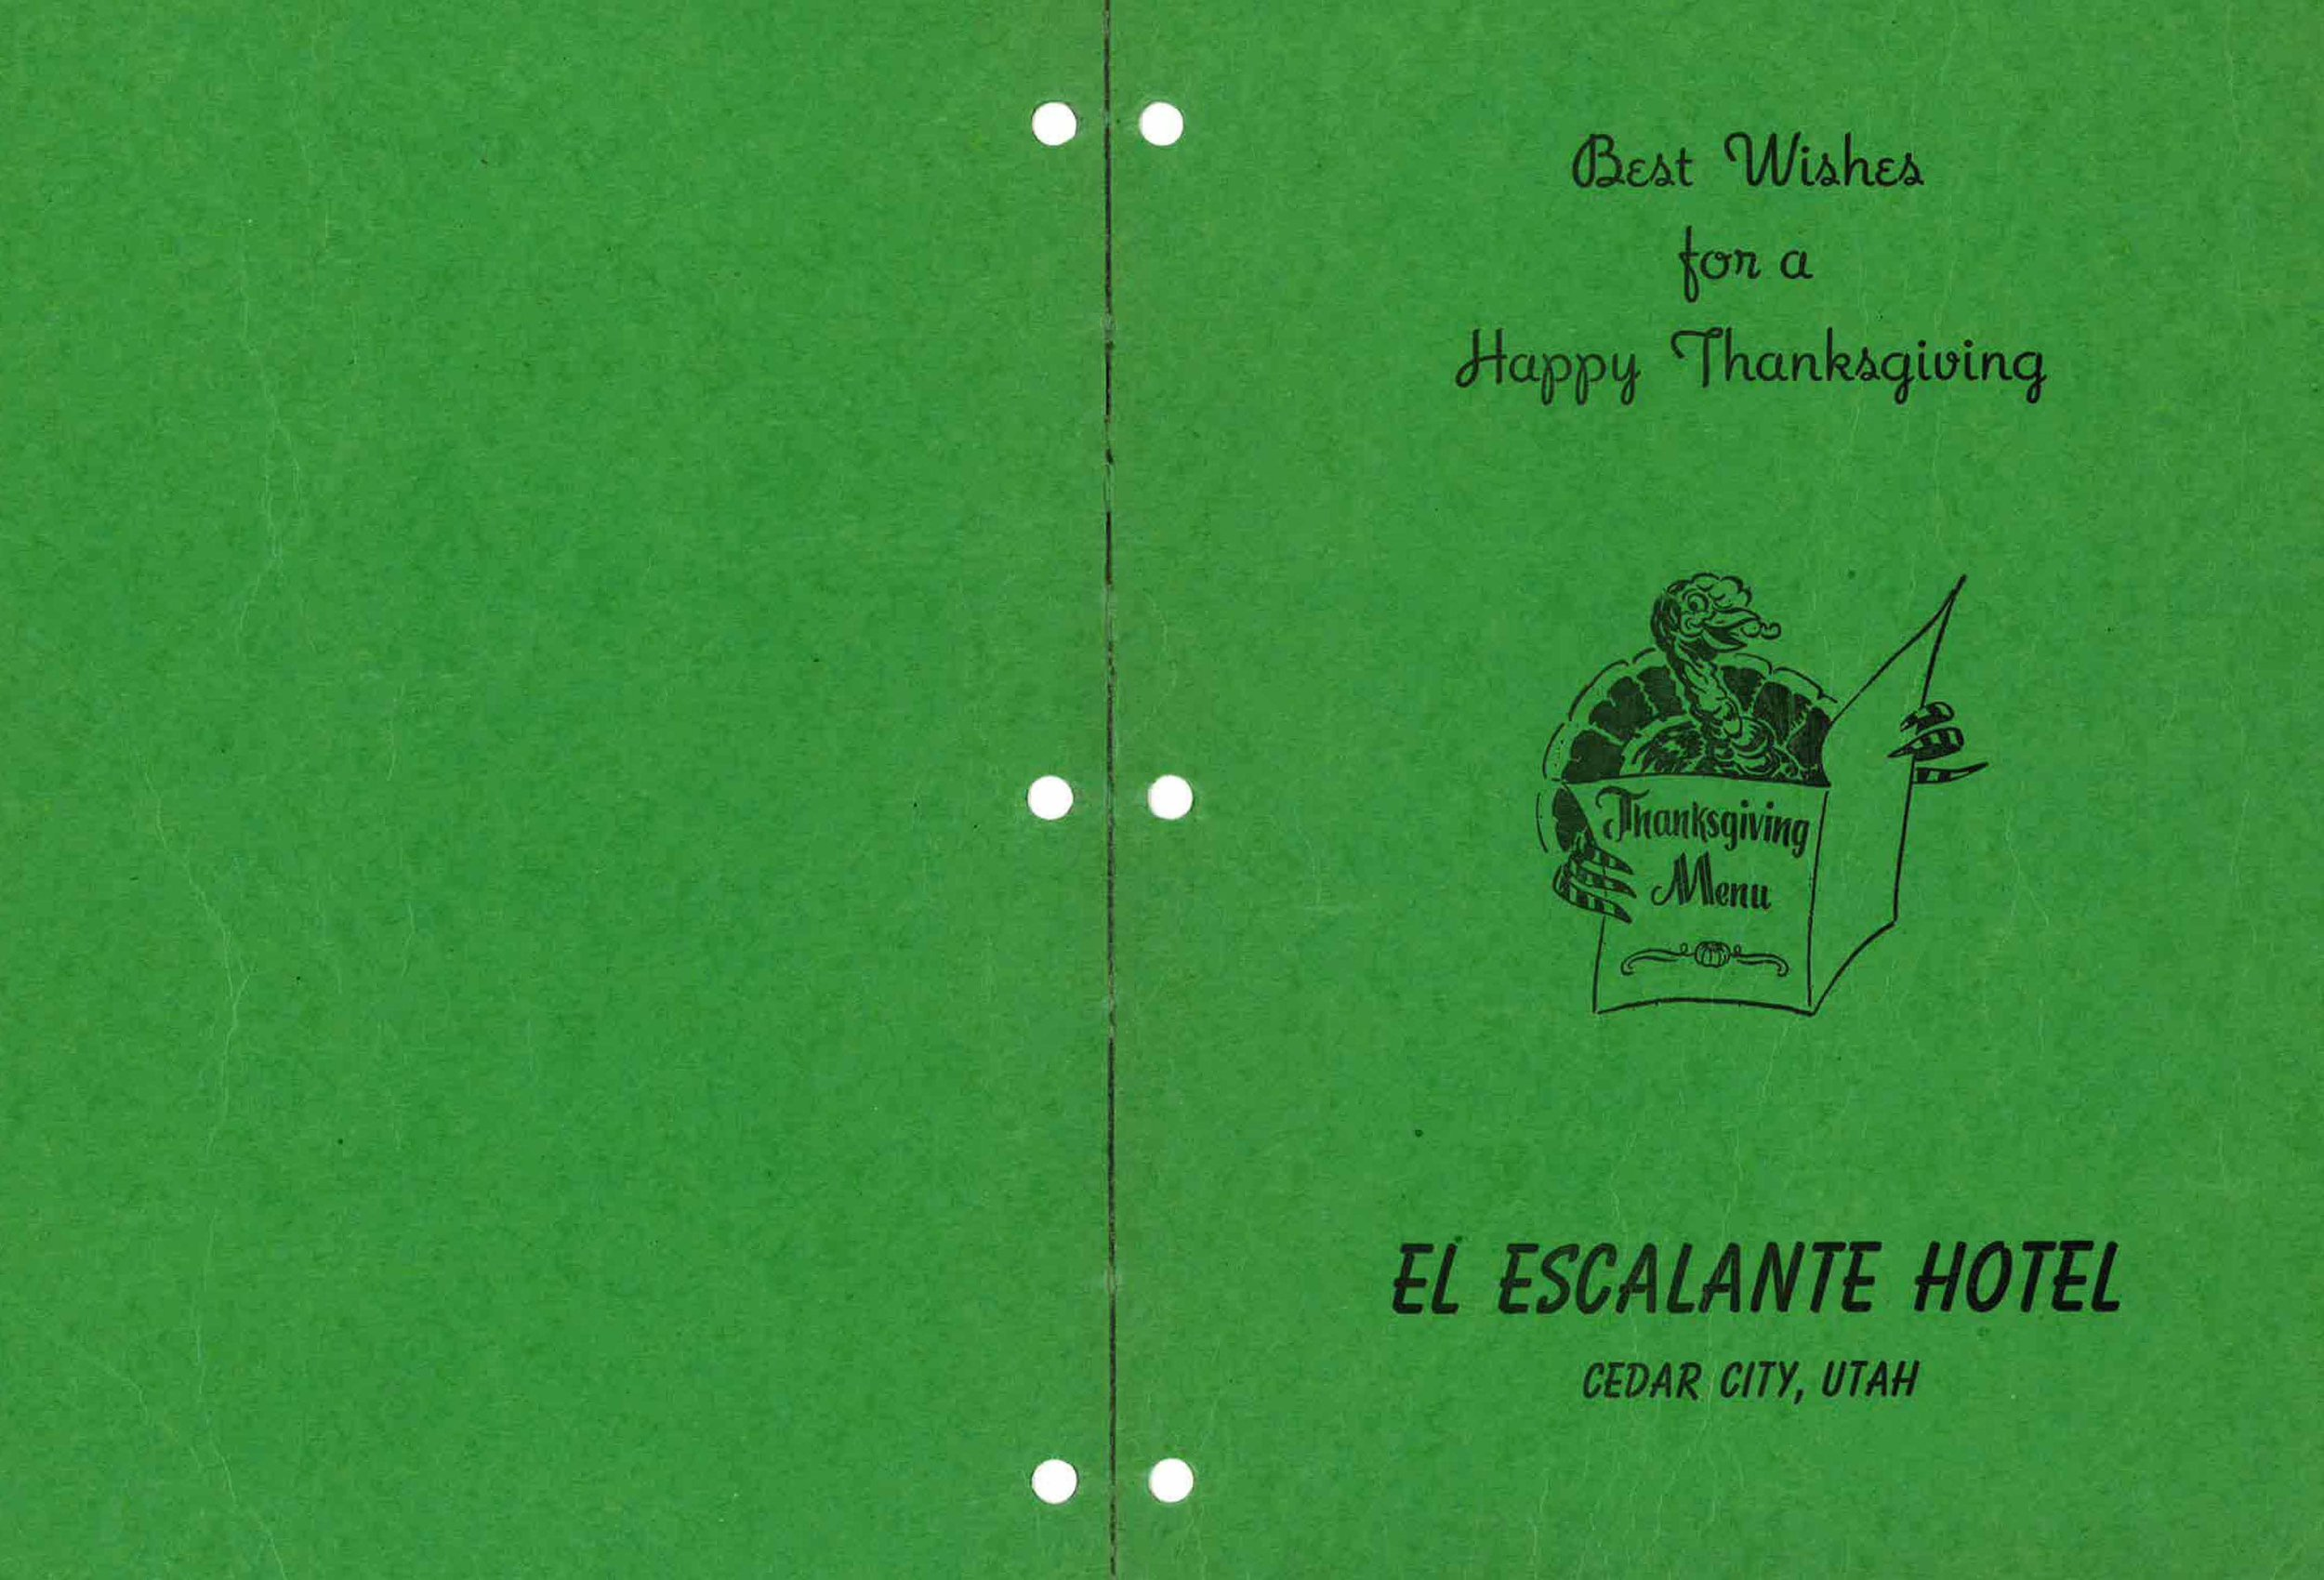 el-escalante-hotel-thanksgiving-menu-1